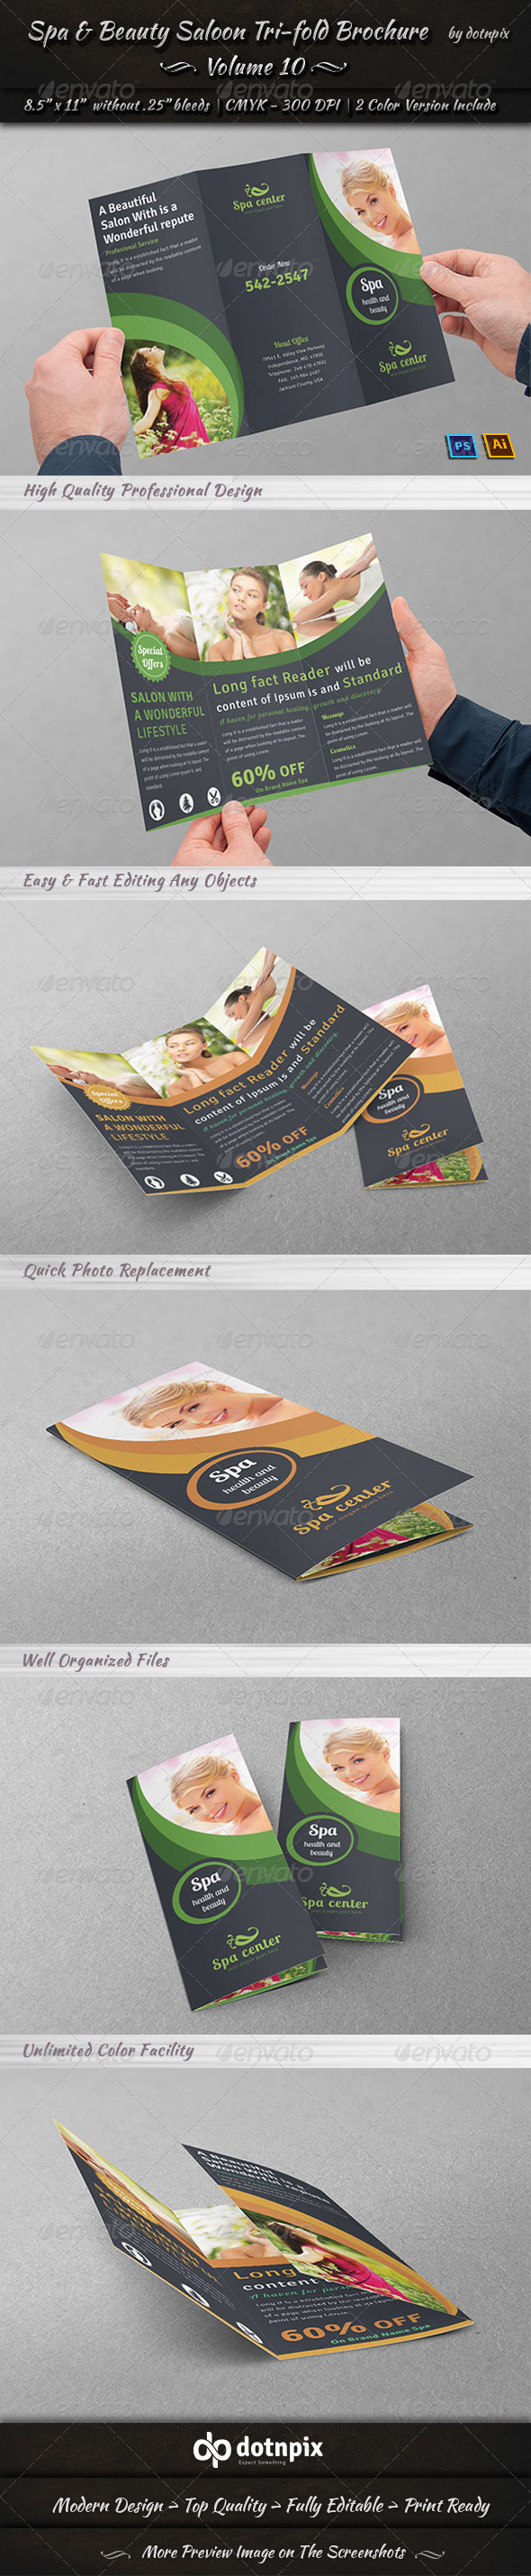 GraphicRiver Spa & Beauty Saloon Tri-fold Brochure Volume 10 7913711